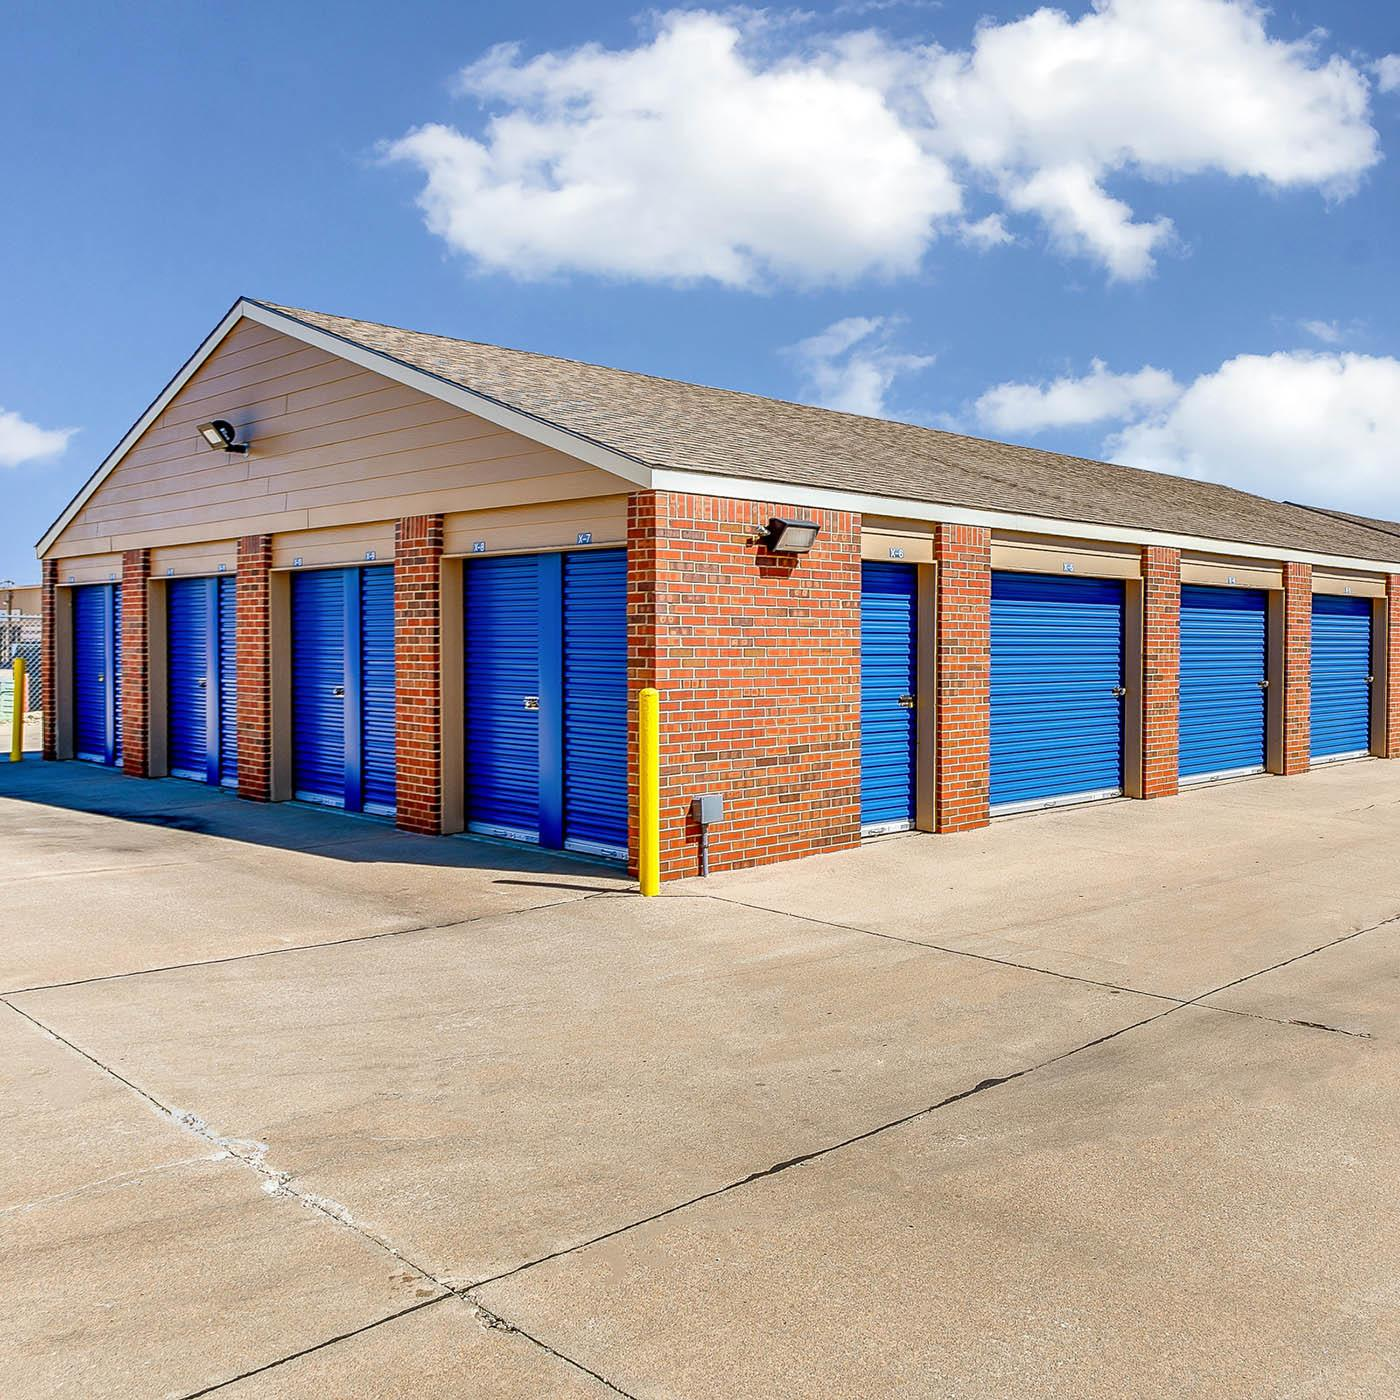 Storage facilities at Security Self-Storage